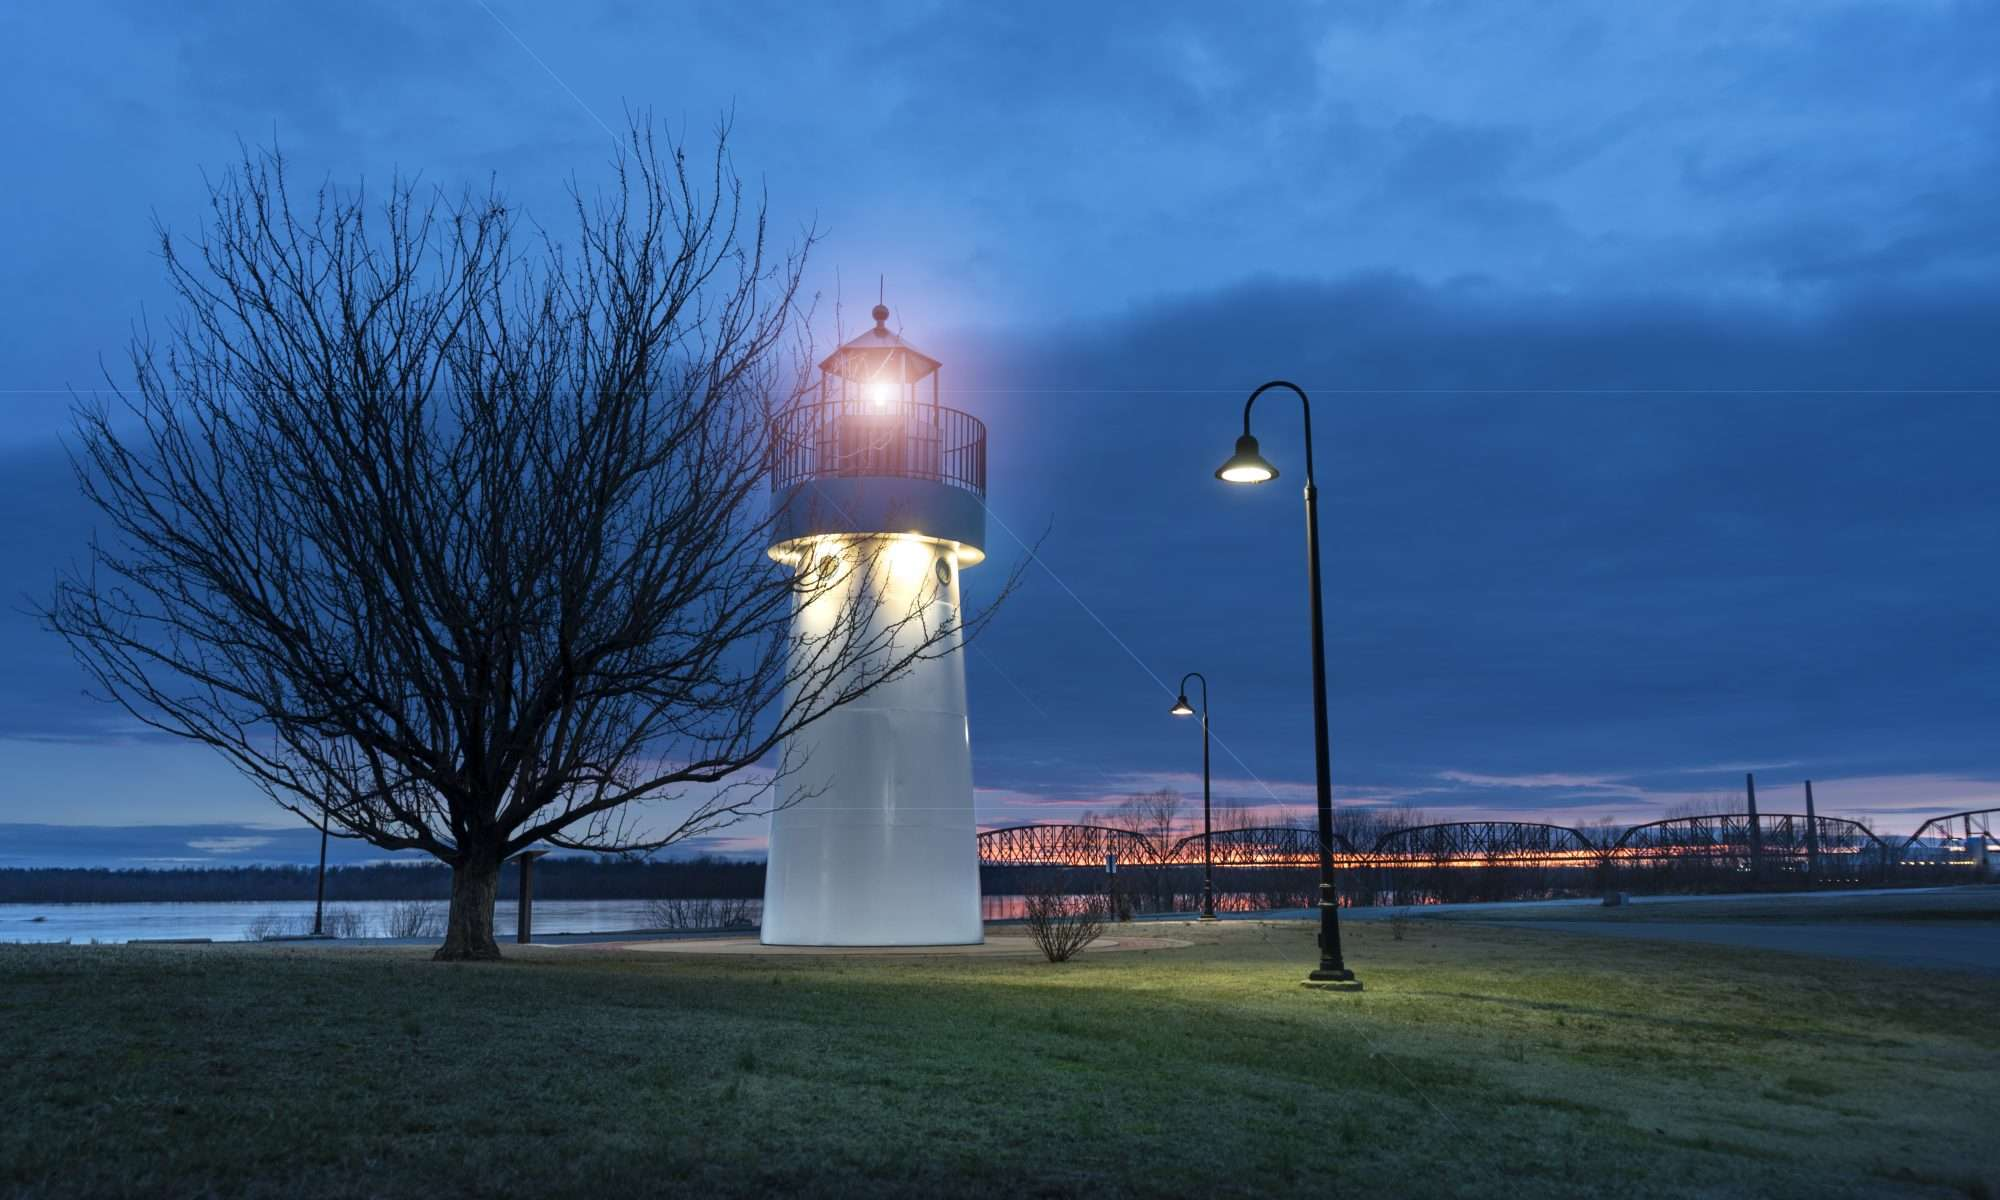 Feb 18, 2018 - LightHouse at night in Dorothy Miller Park on Ohio River in Metropolis IL/craigcurriephotography.com